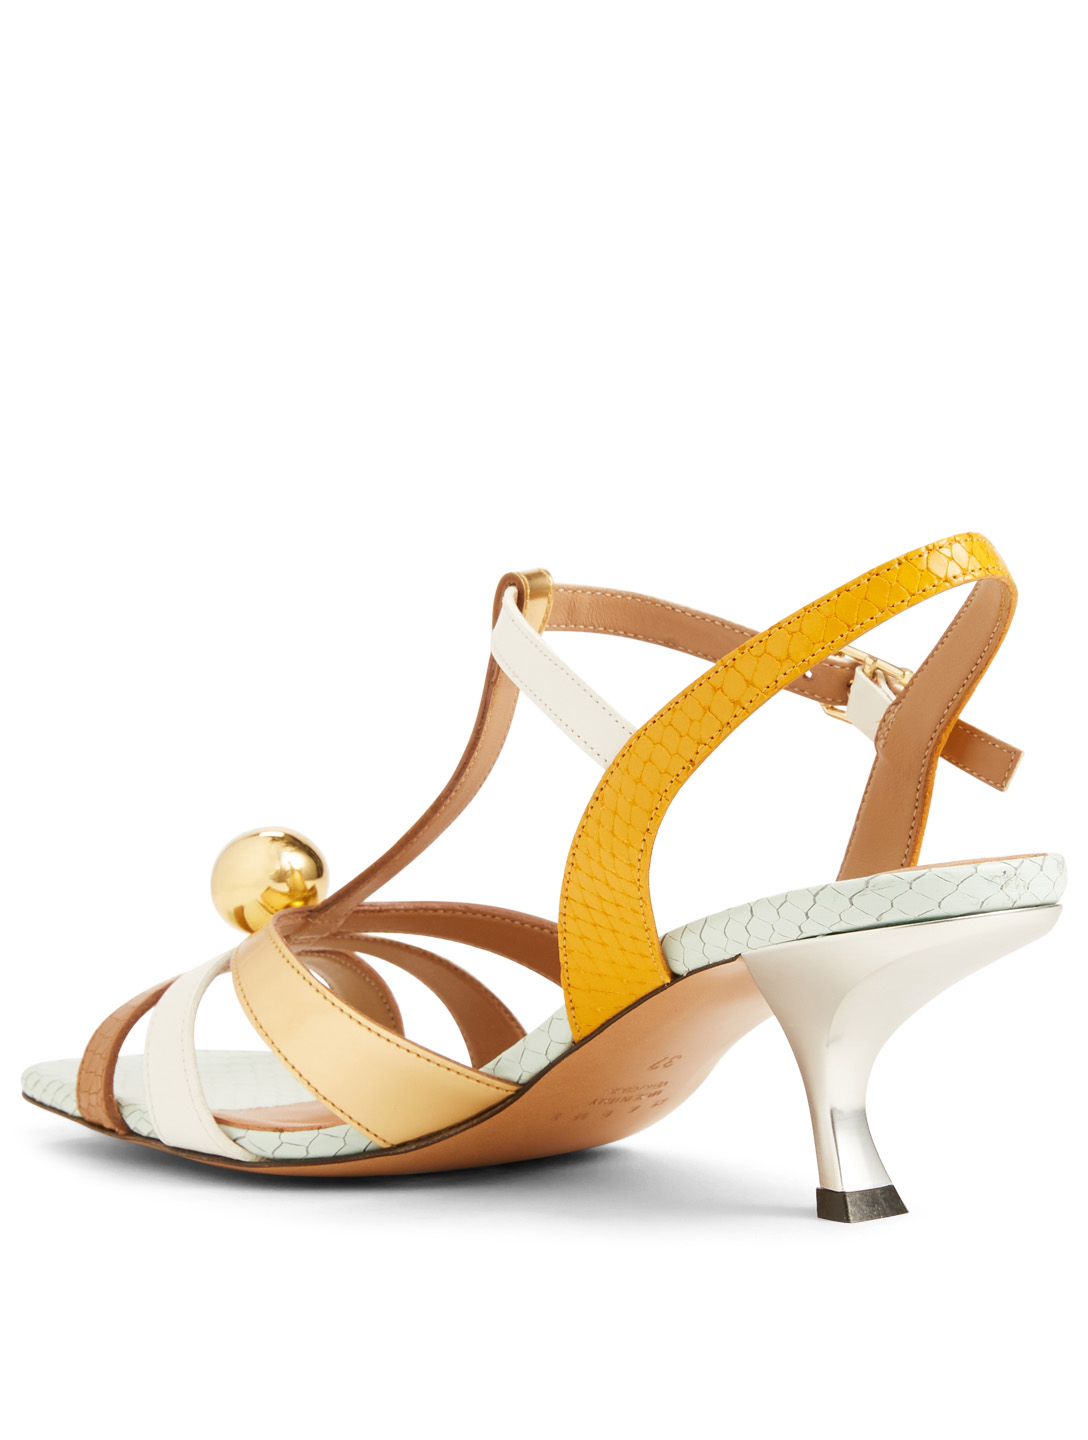 ccecf4d8c ... Women s Gold  MARNI Metallic And Snake-Embossed Leather Heeled Sandals  Women s ...